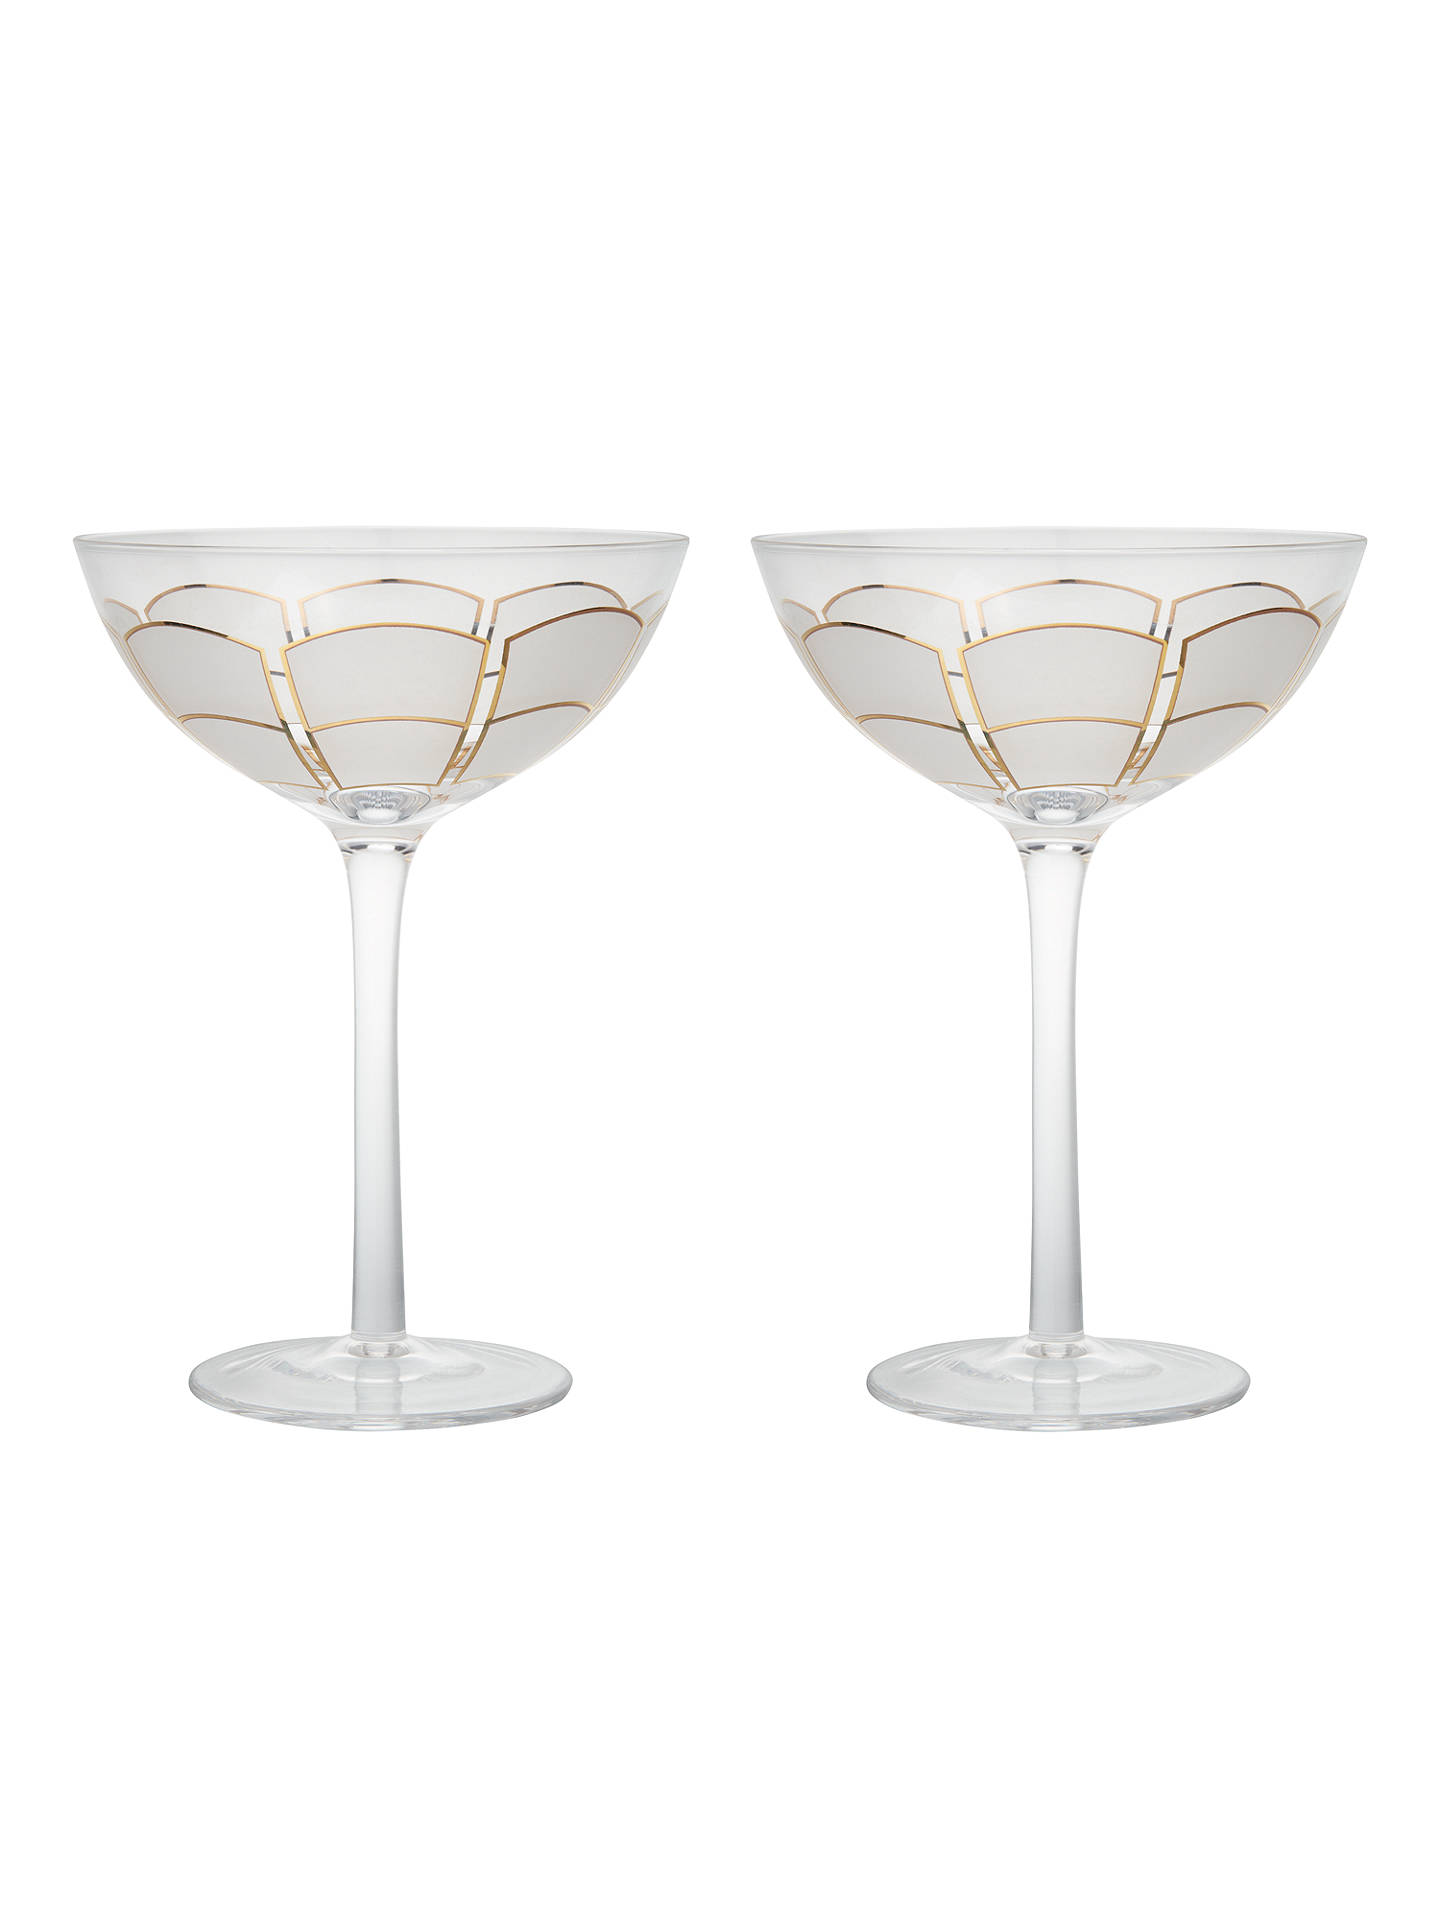 Buy John Lewis & Partners Deco Coupe Glasses, Set of 2, White/Gold, 220ml Online at johnlewis.com